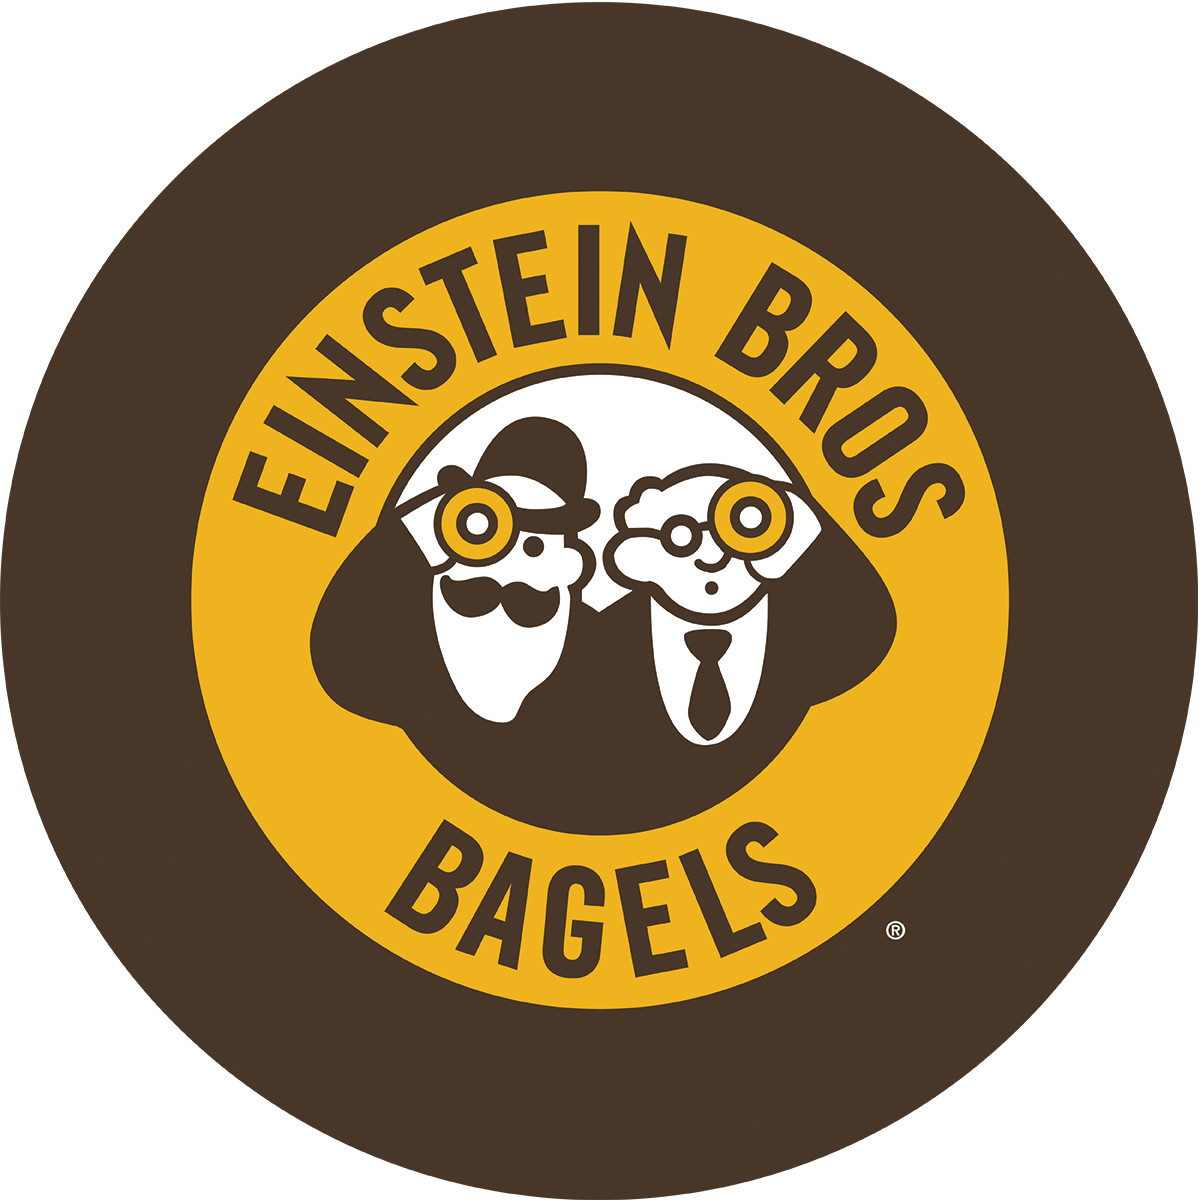 Einstein Bros. Bagels image 5